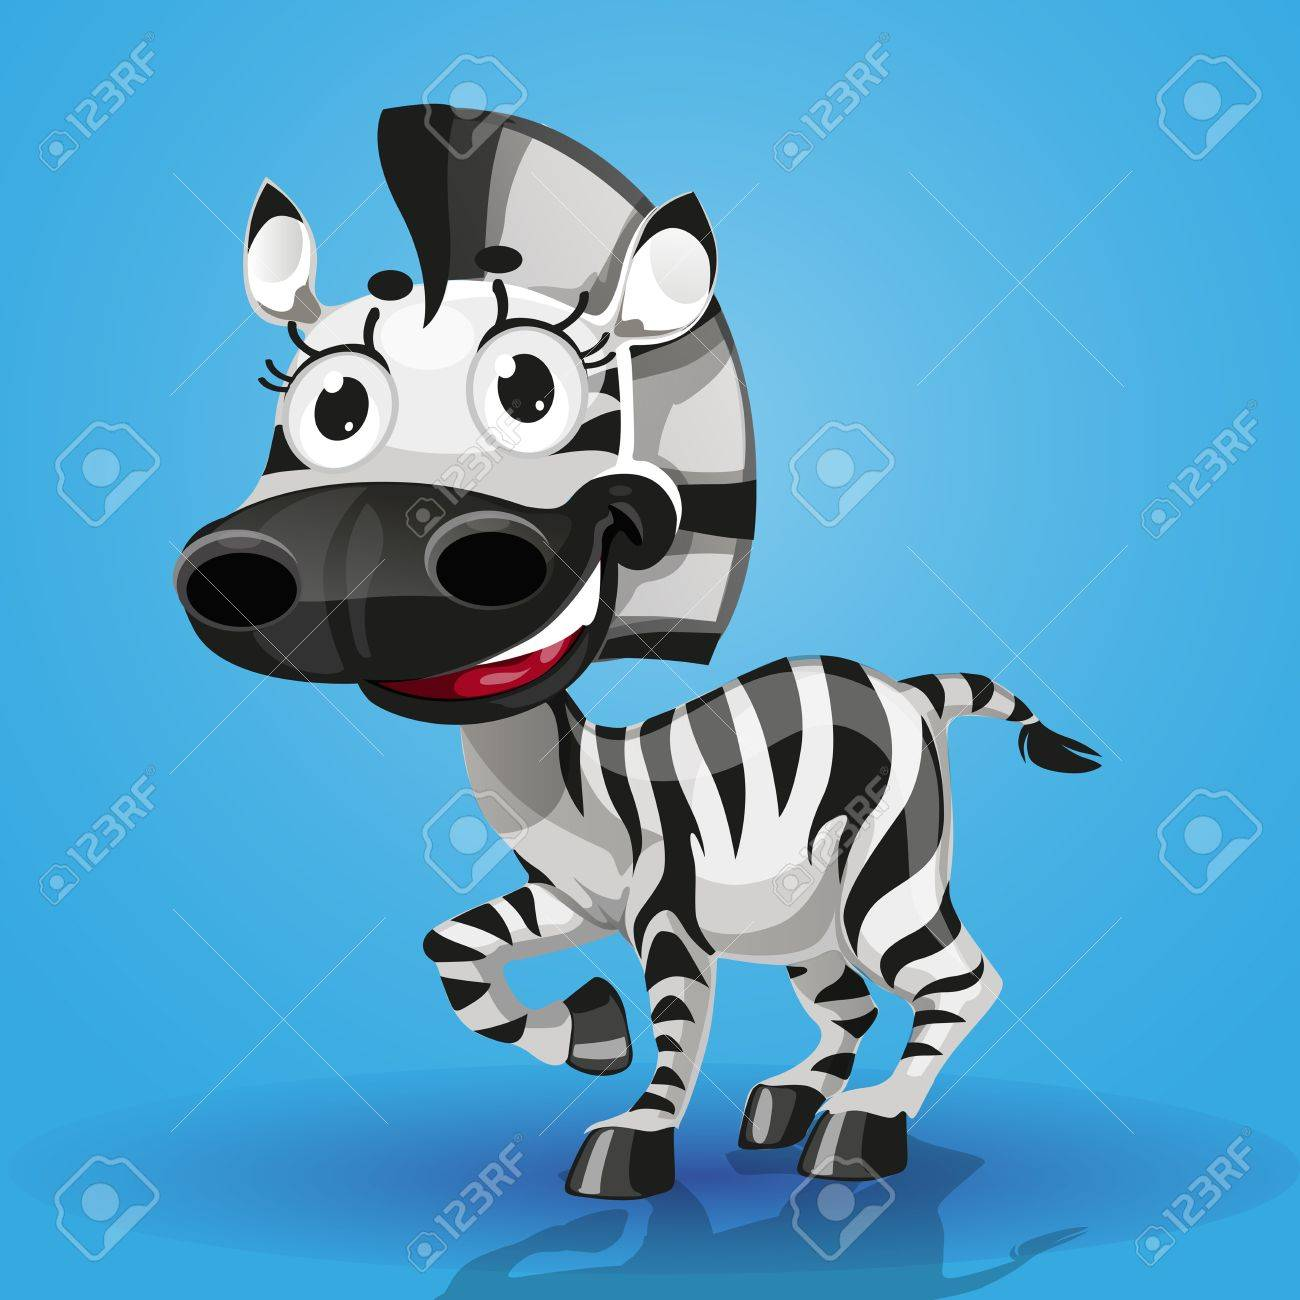 Cute cartoon character baby-zebra Stock Vector - 15113394